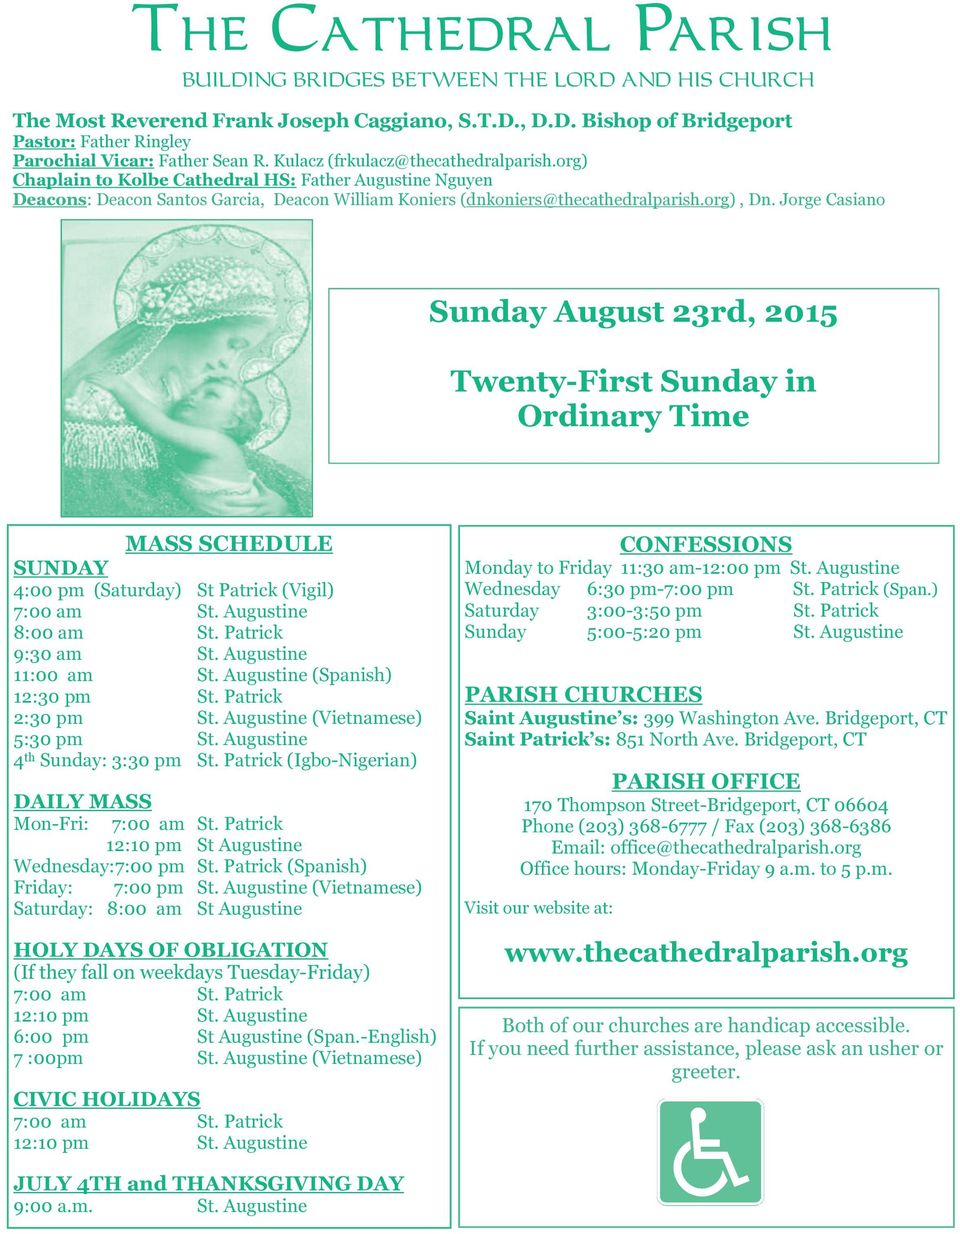 Jorge Casiano Sunday August 23rd, 2015 Twenty-First Sunday in Ordinary Time MASS SCHEDULE SUNDAY 4:00 pm (Saturday) St Patrick (Vigil) 7:00 am St. Augustine 8:00 am St. Patrick 9:30 am St.